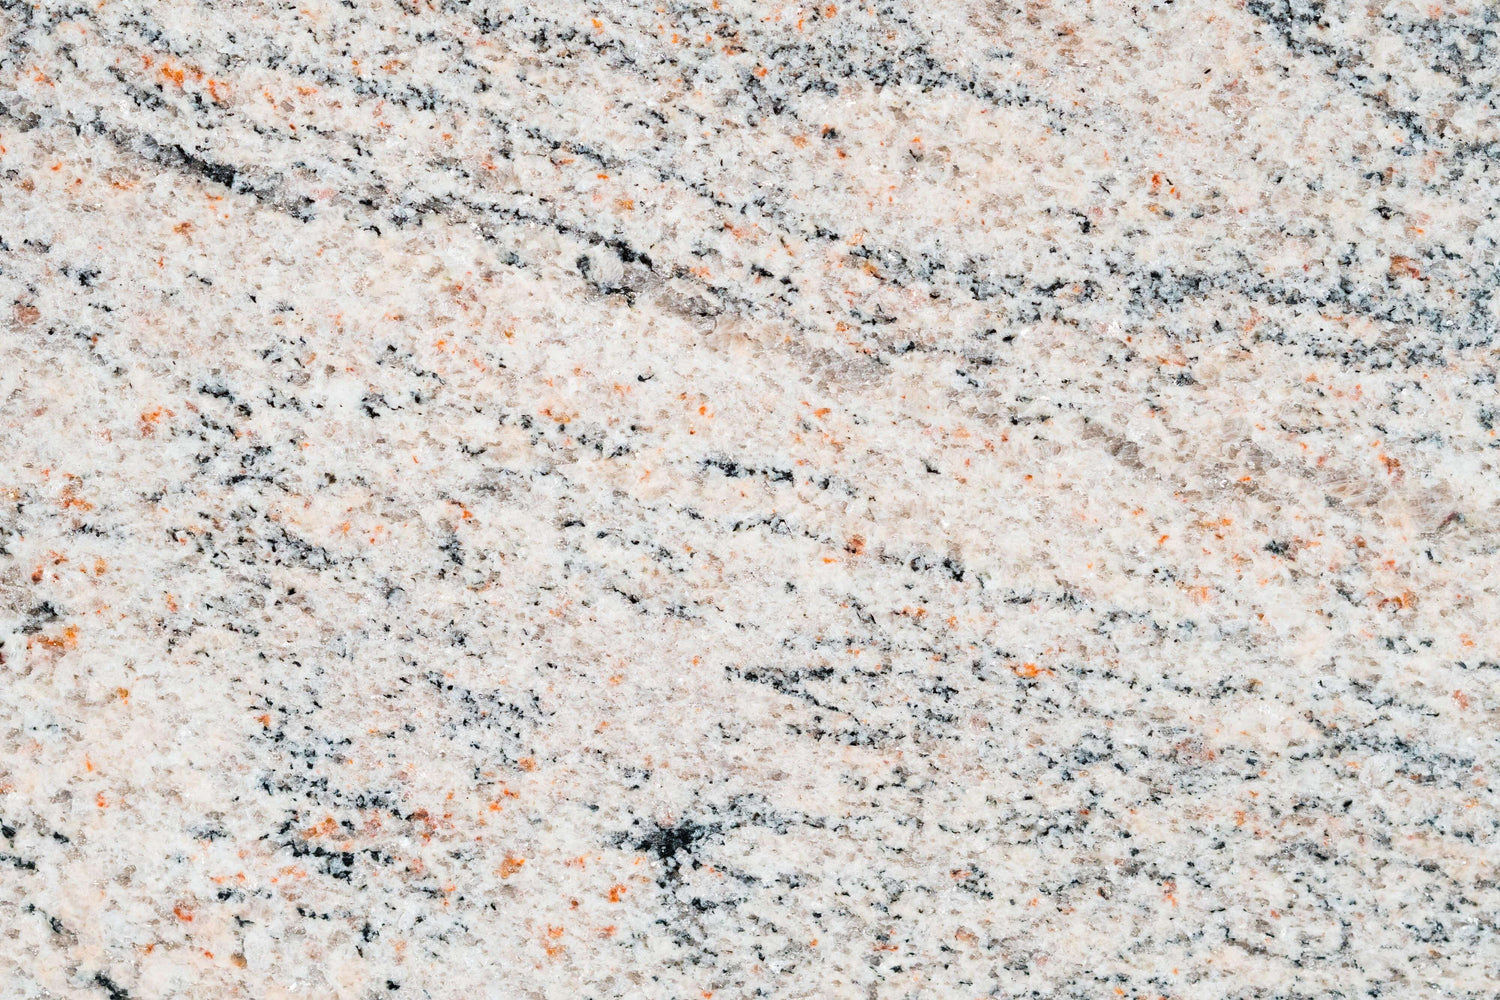 Indian Juparana Light Granite Tile - Polished